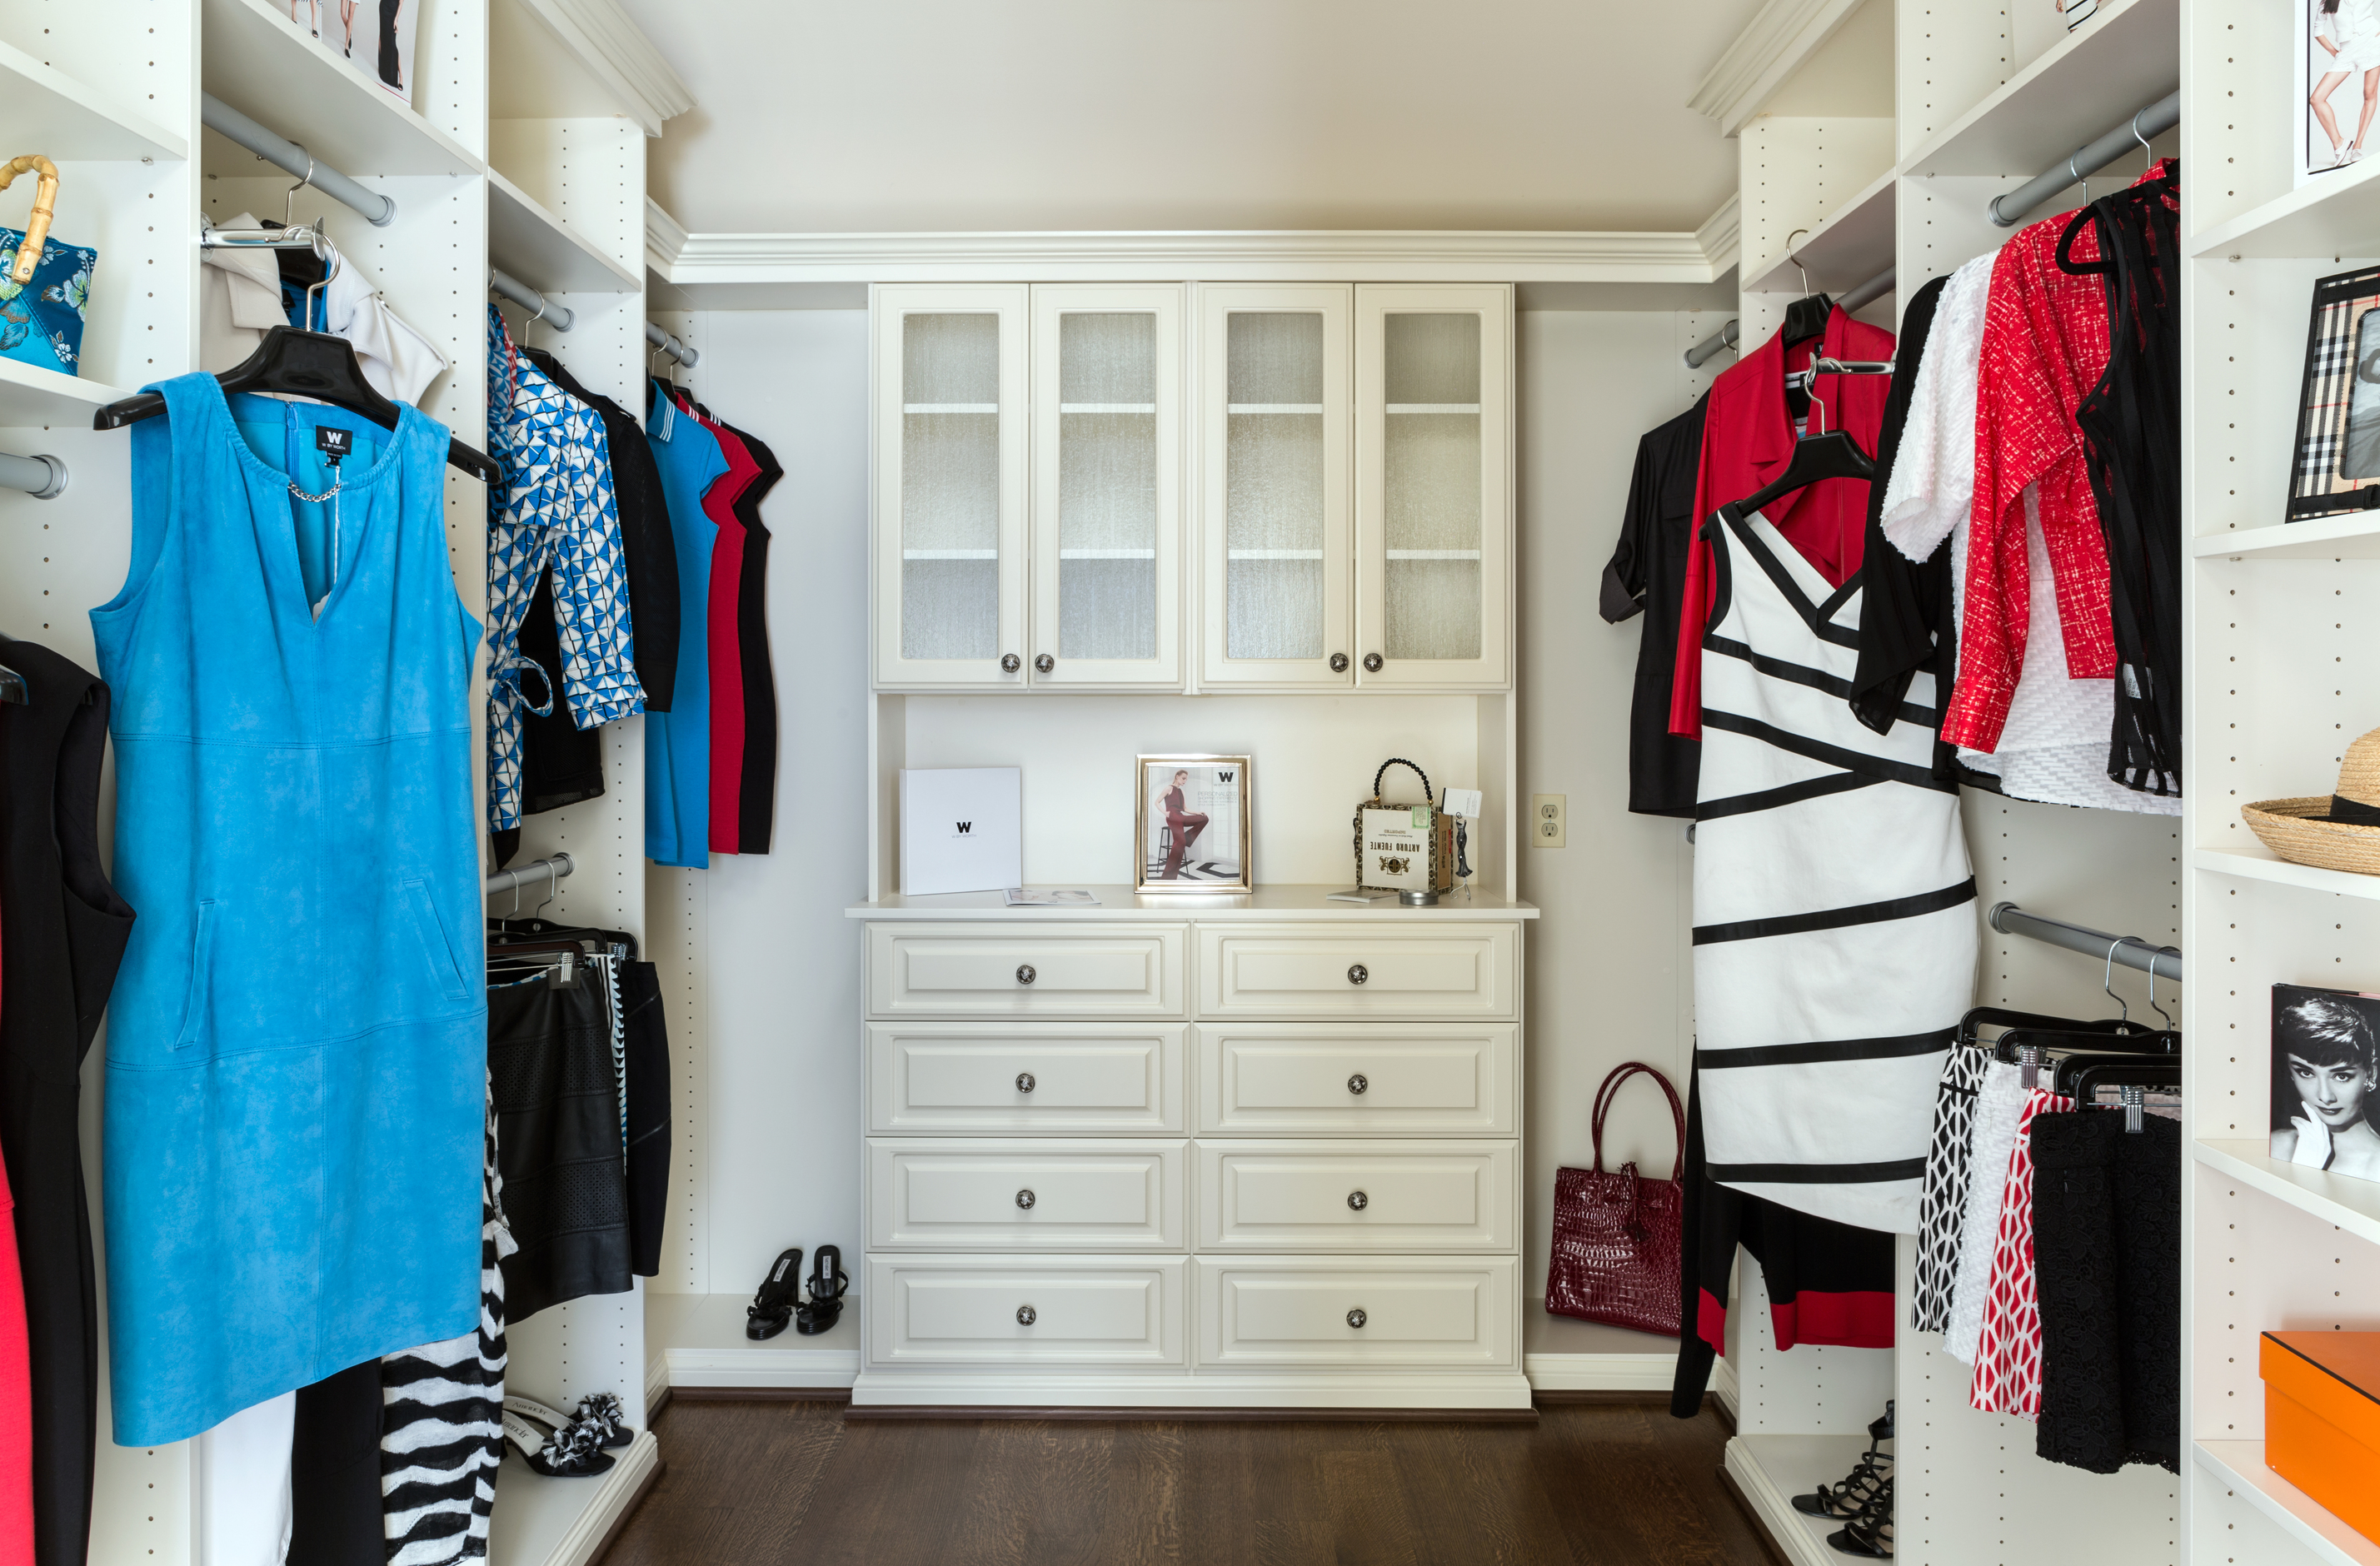 Genial Fullsize Of Closet By Design Large Of Closet By Design ...